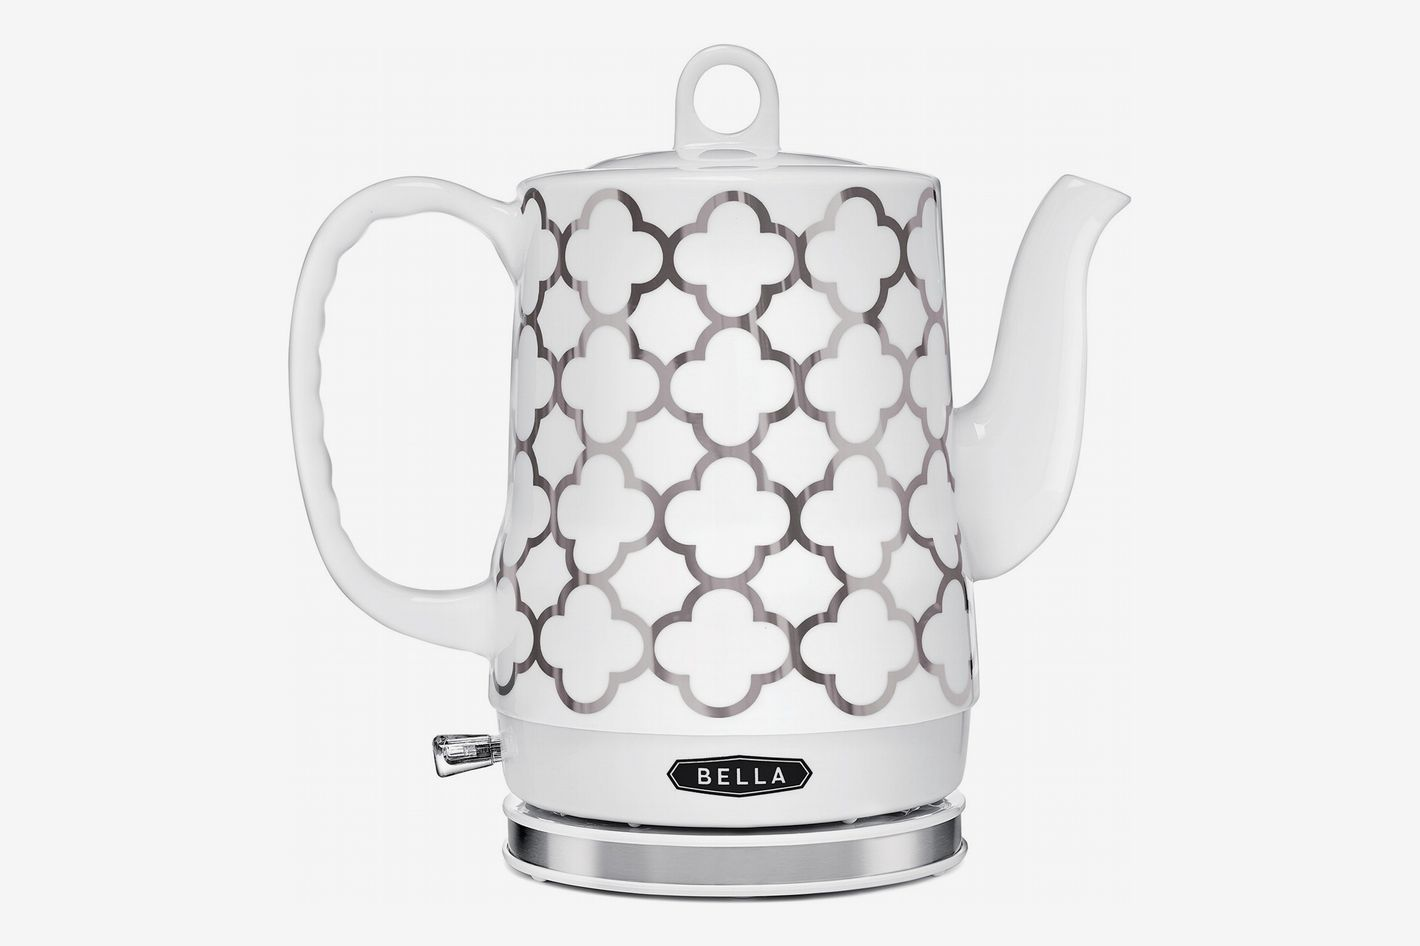 BELLA 1.2L Ceramic Electric Tea Kettle